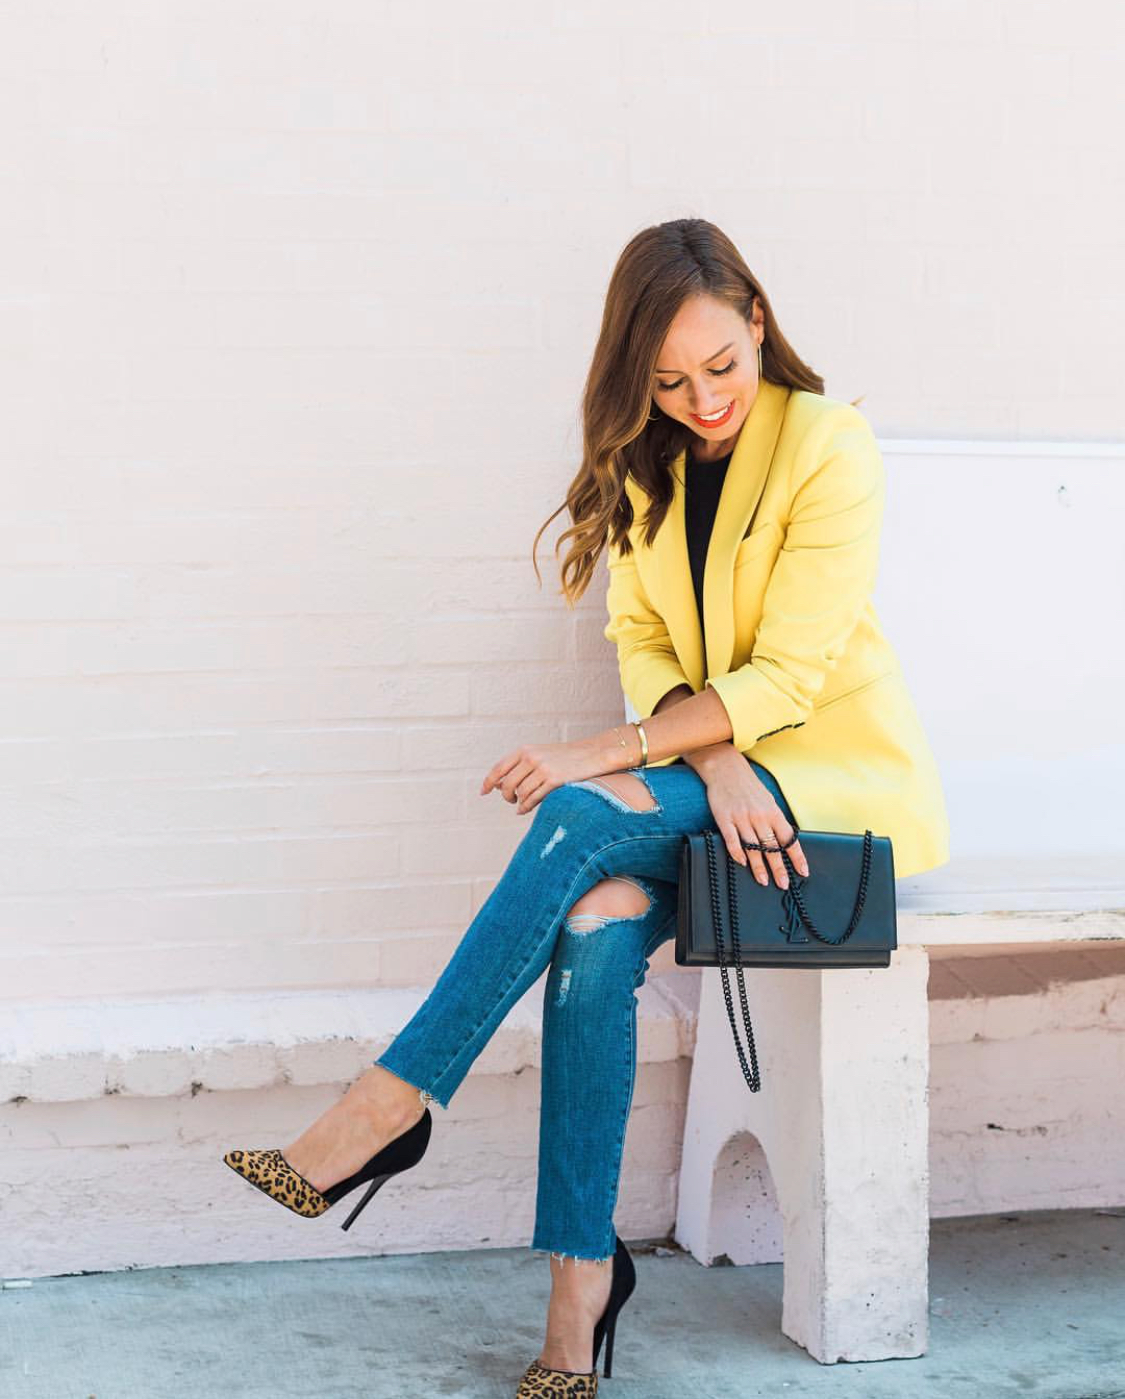 Neon and leopard - Perfect for client meetings that transition into happy hour